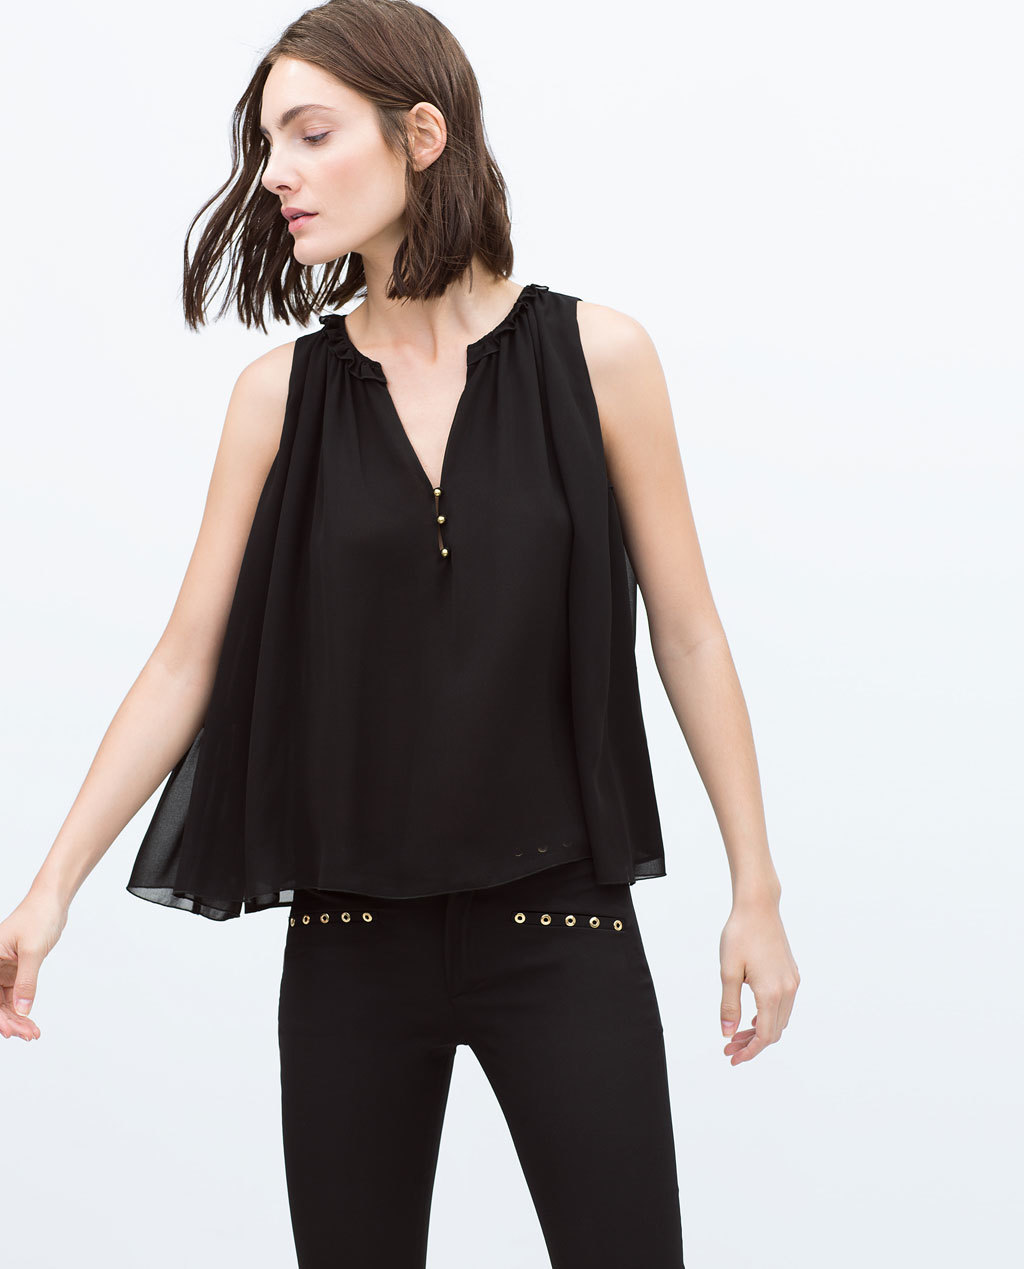 Pleated Top - neckline: v-neck; pattern: plain; sleeve style: sleeveless; bust detail: buttons at bust (in middle at breastbone)/zip detail at bust; predominant colour: black; occasions: casual, evening, creative work; length: standard; style: top; fibres: polyester/polyamide - 100%; fit: loose; sleeve length: sleeveless; texture group: sheer fabrics/chiffon/organza etc.; pattern type: fabric; season: s/s 2015; wardrobe: basic